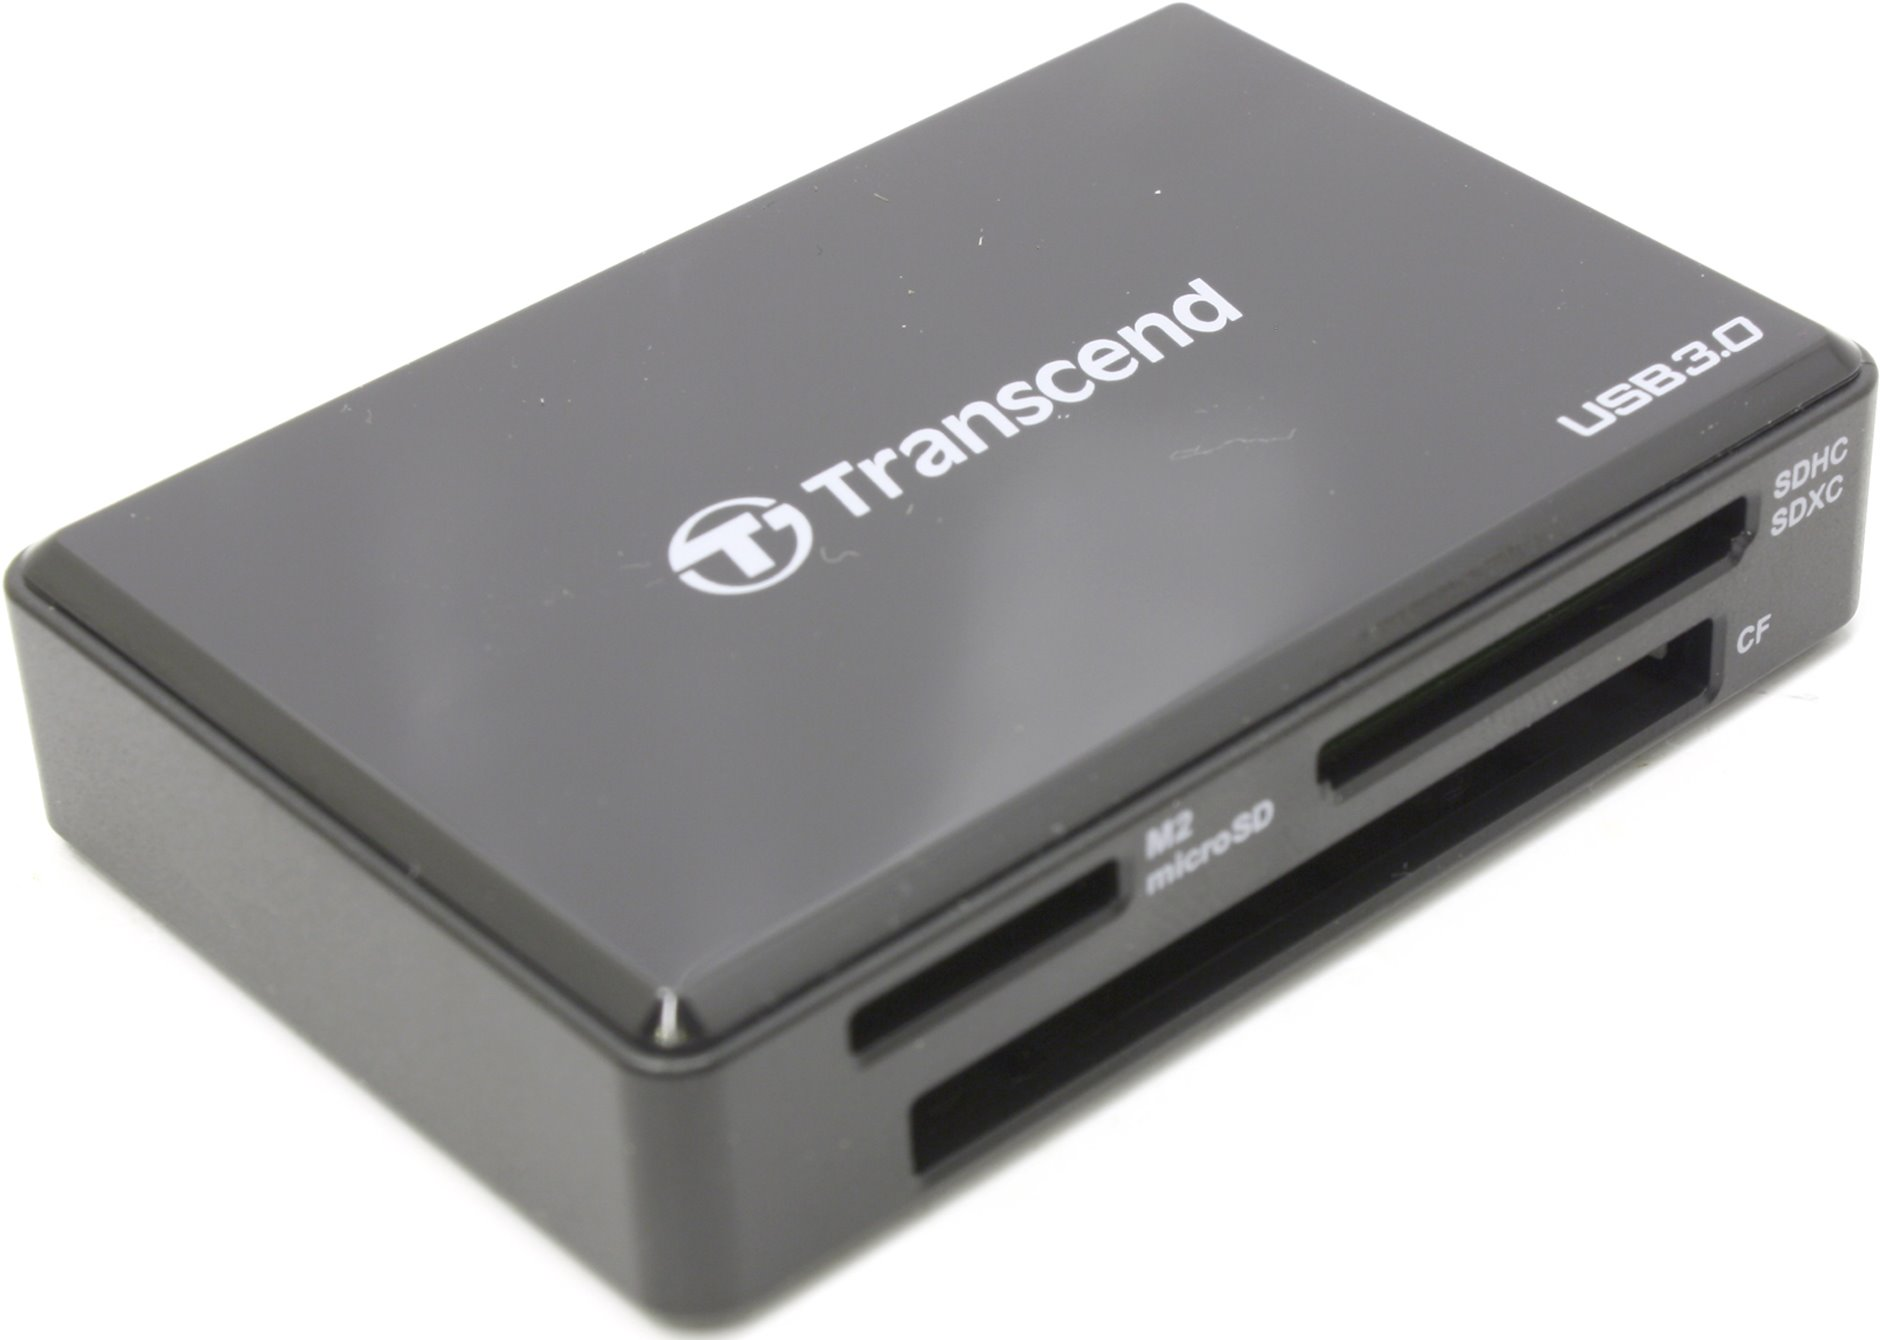 Transcend Usb 30 Card Readers Rdf8 Black Reader